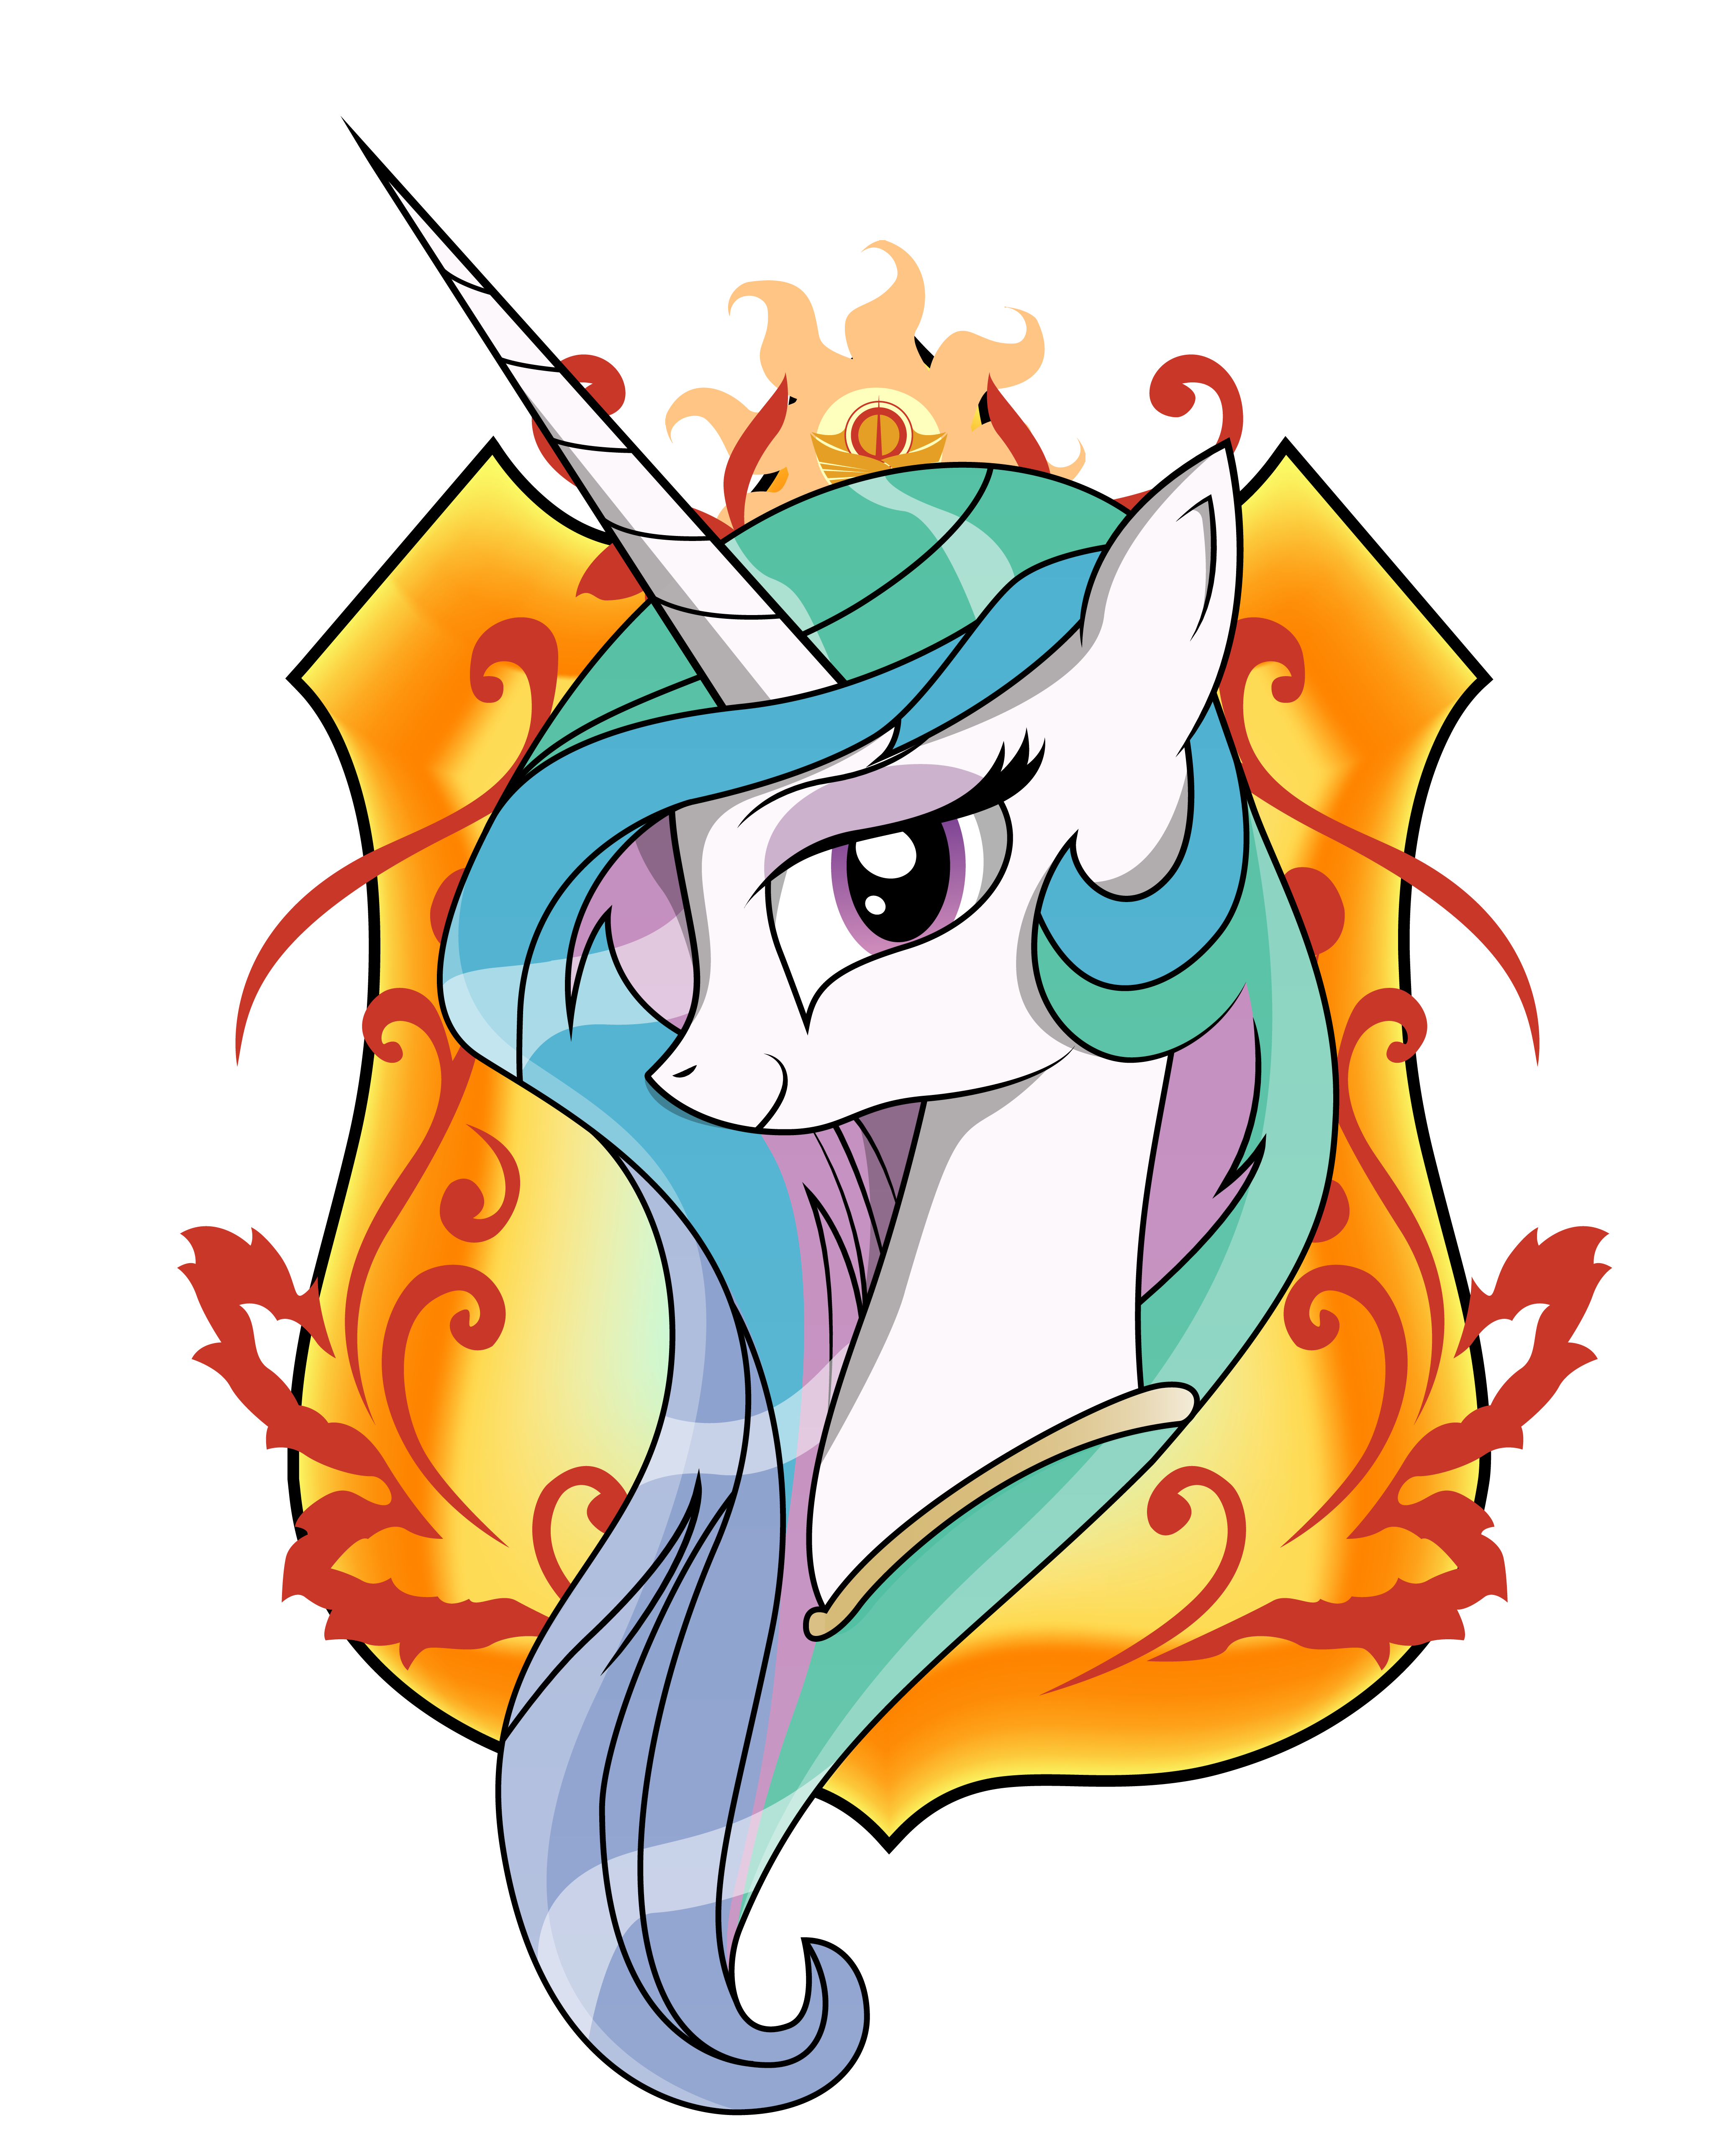 celestial_flare_by_spectty-d7dc37k.png